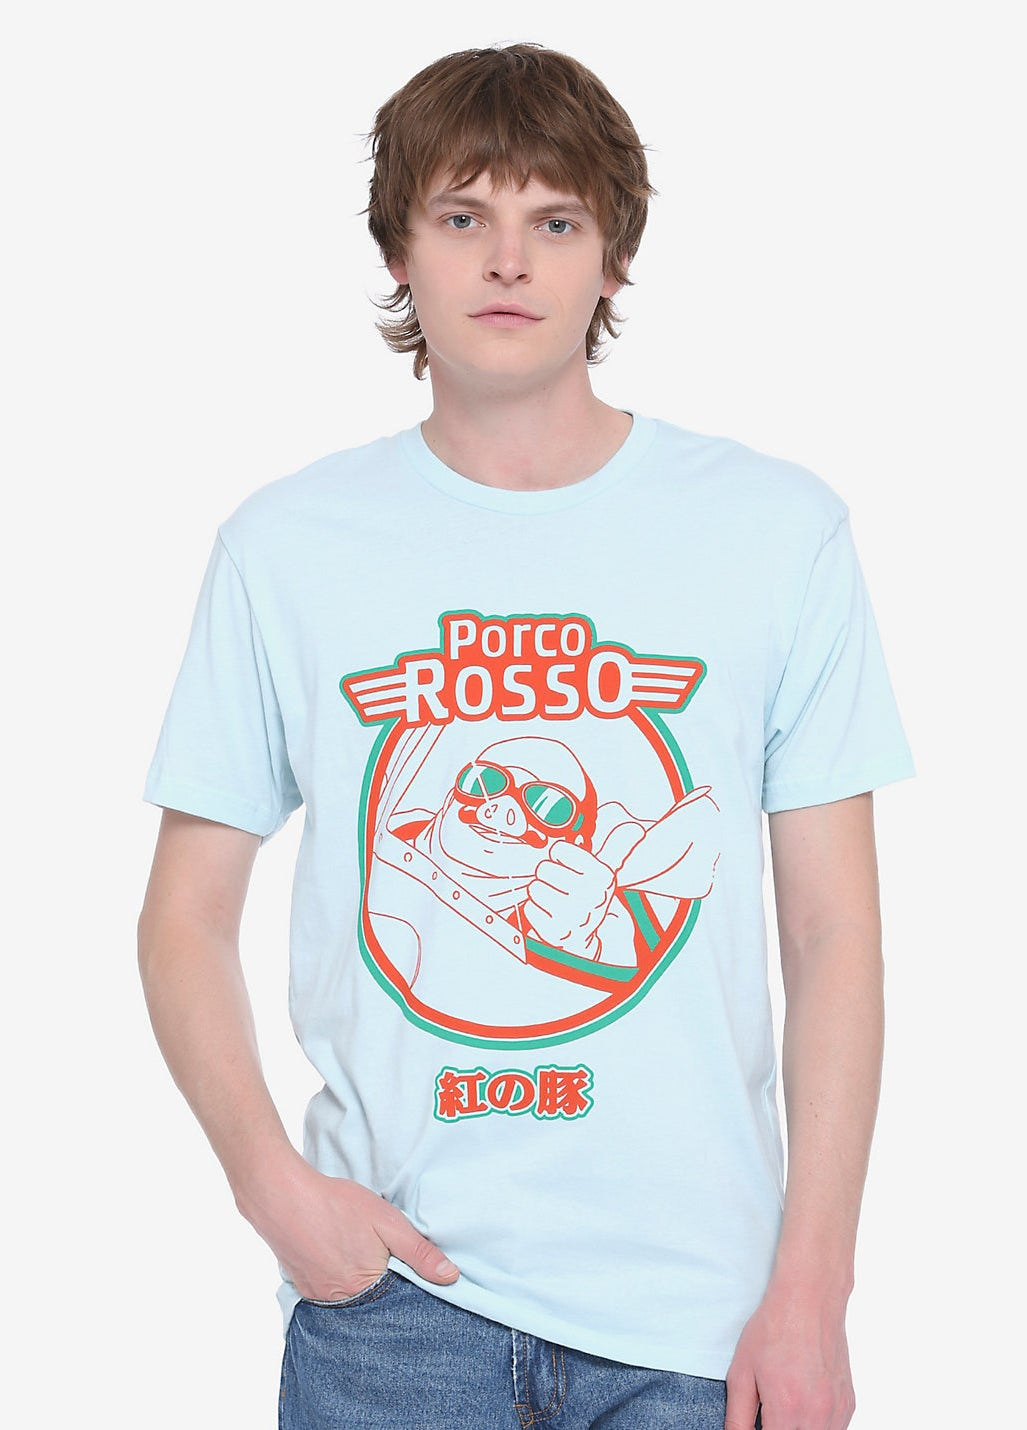 model wearing the light blue tee with the movie logo and Porco Rosso in his plane